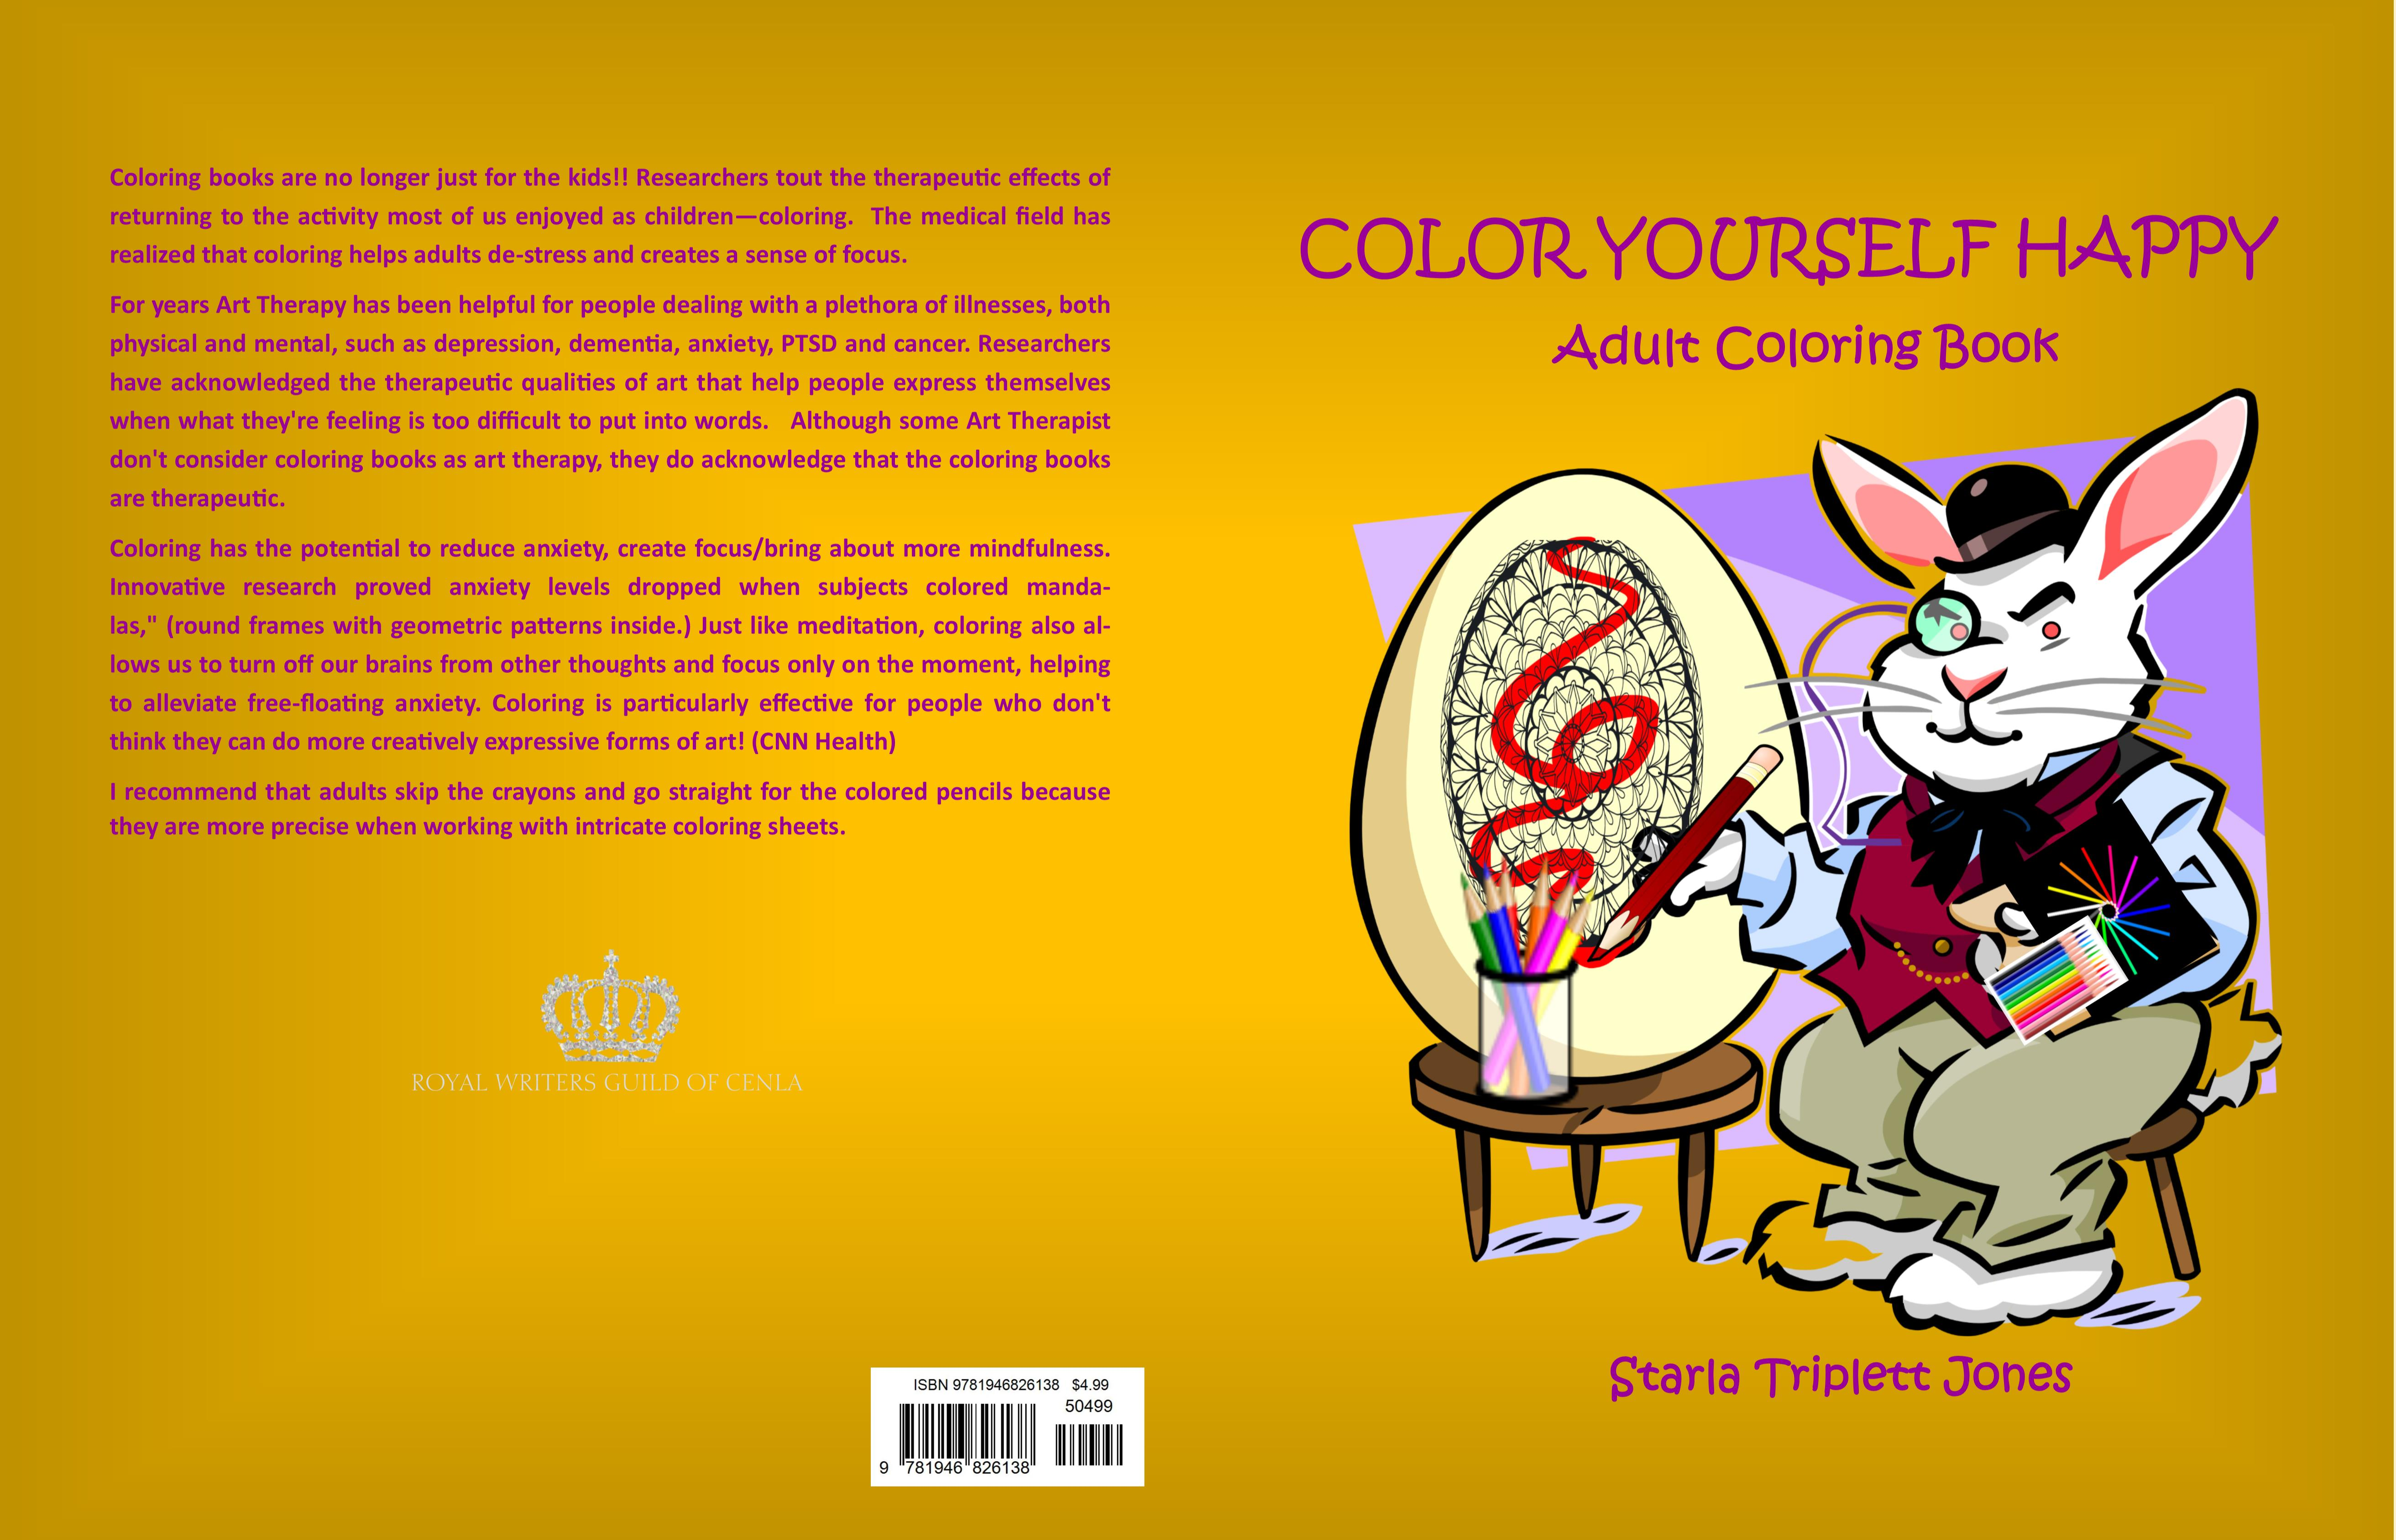 Color Yourself Happy cover image